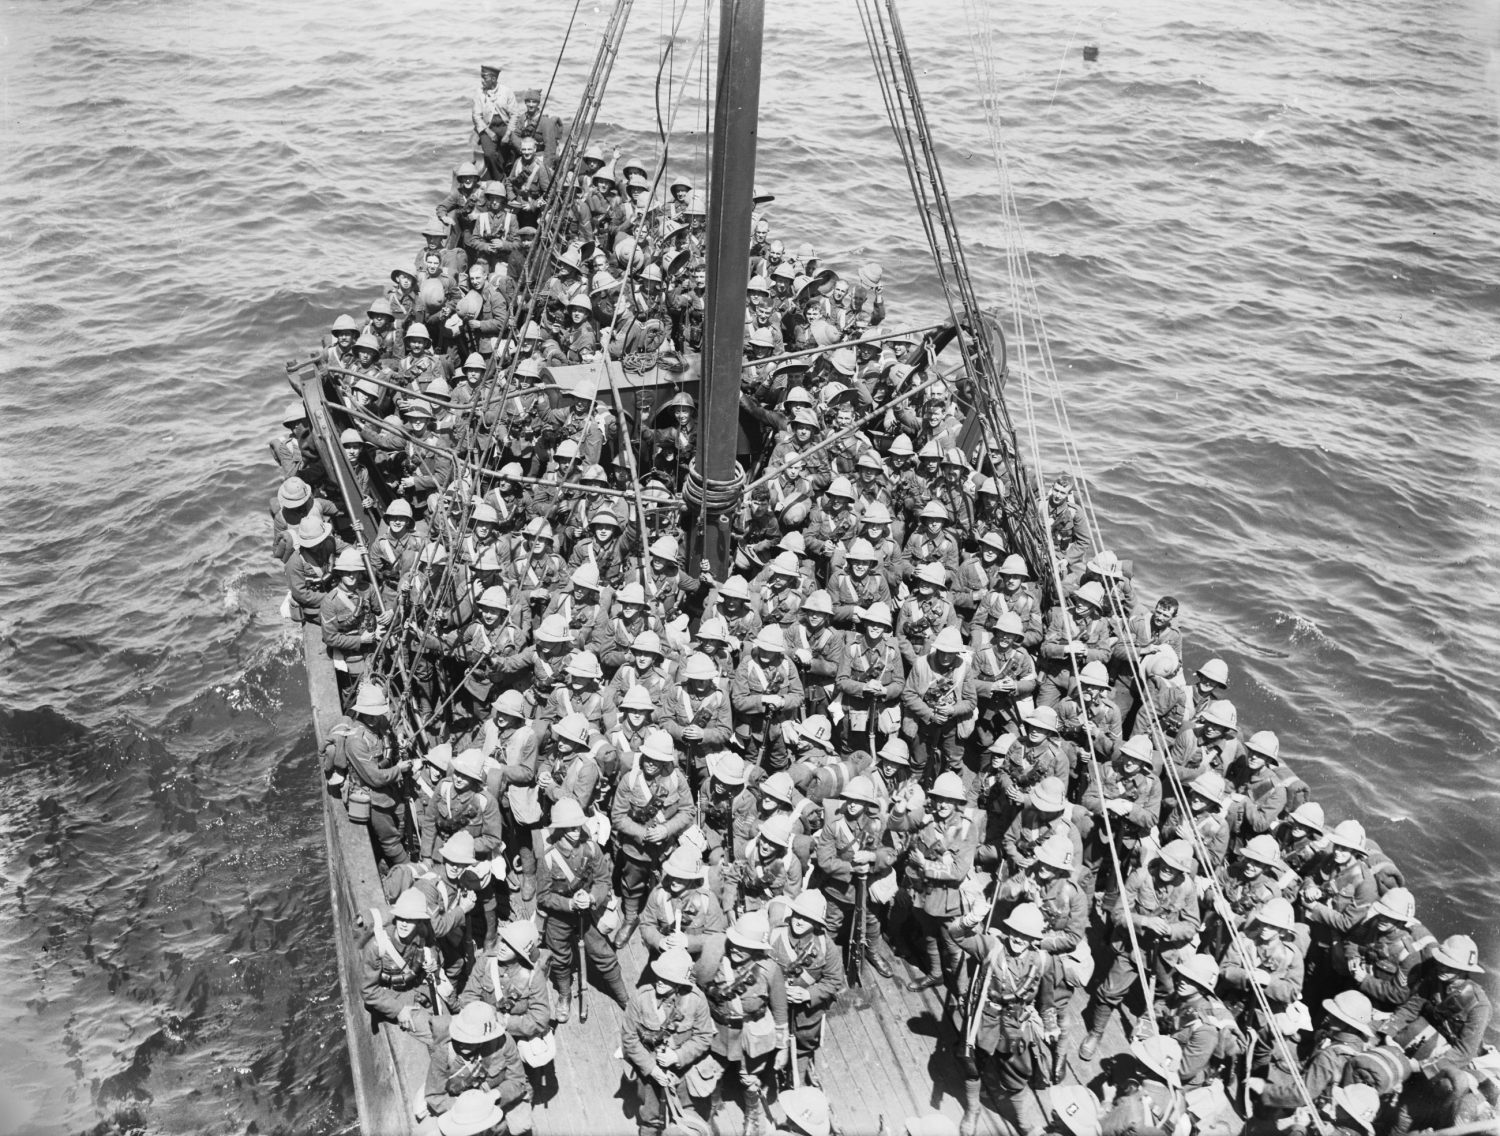 Soldiers of the Lancashire Fusiliers, 29th Division, are seen on board an old Royal Navy battleship used in the third phase of operations in the Dardanelles Straits before they disembarked at 'W' and 'V' beaches off Cape Helles on 5 May 1915